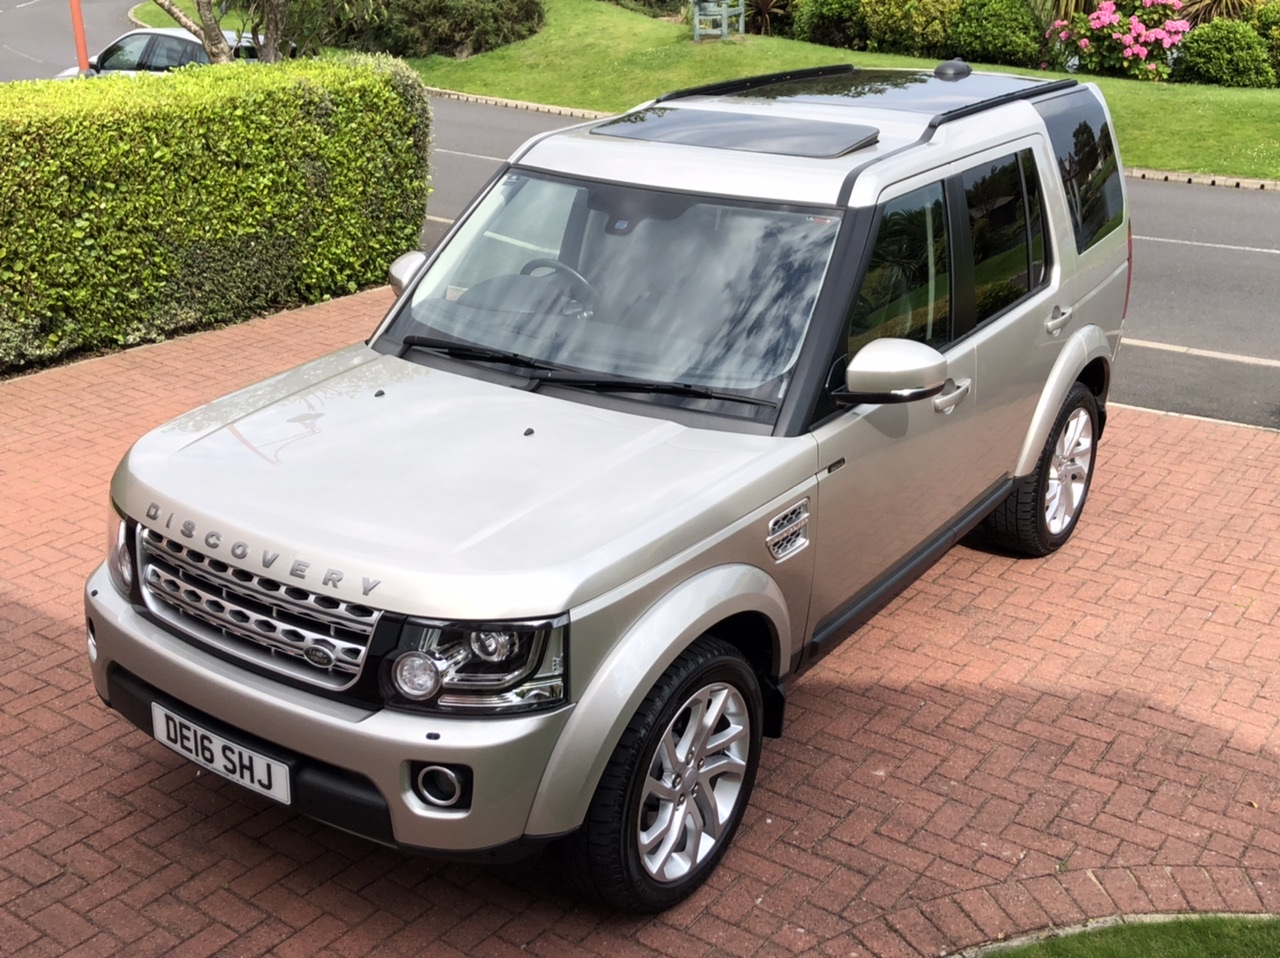 2016 16 LAND ROVER DISCOVERY 4 SDV6 3.0 HSE AUTO